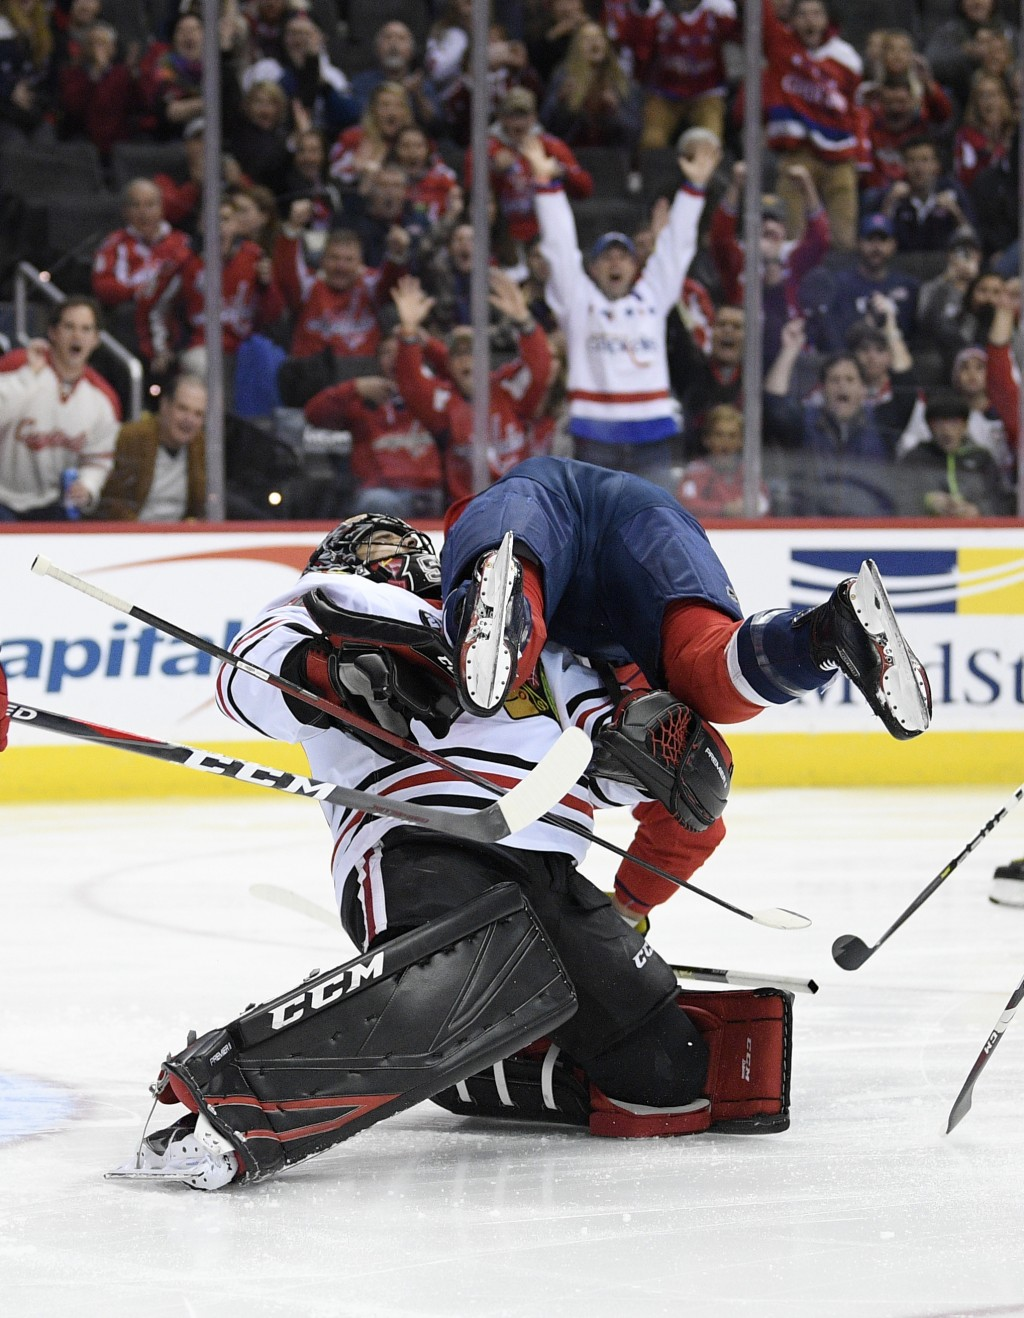 Washington Capitals right wing Tom Wilson, top, collides with Chicago Blackhawks goaltender Corey Crawford, bottom, after he scored a goal during the